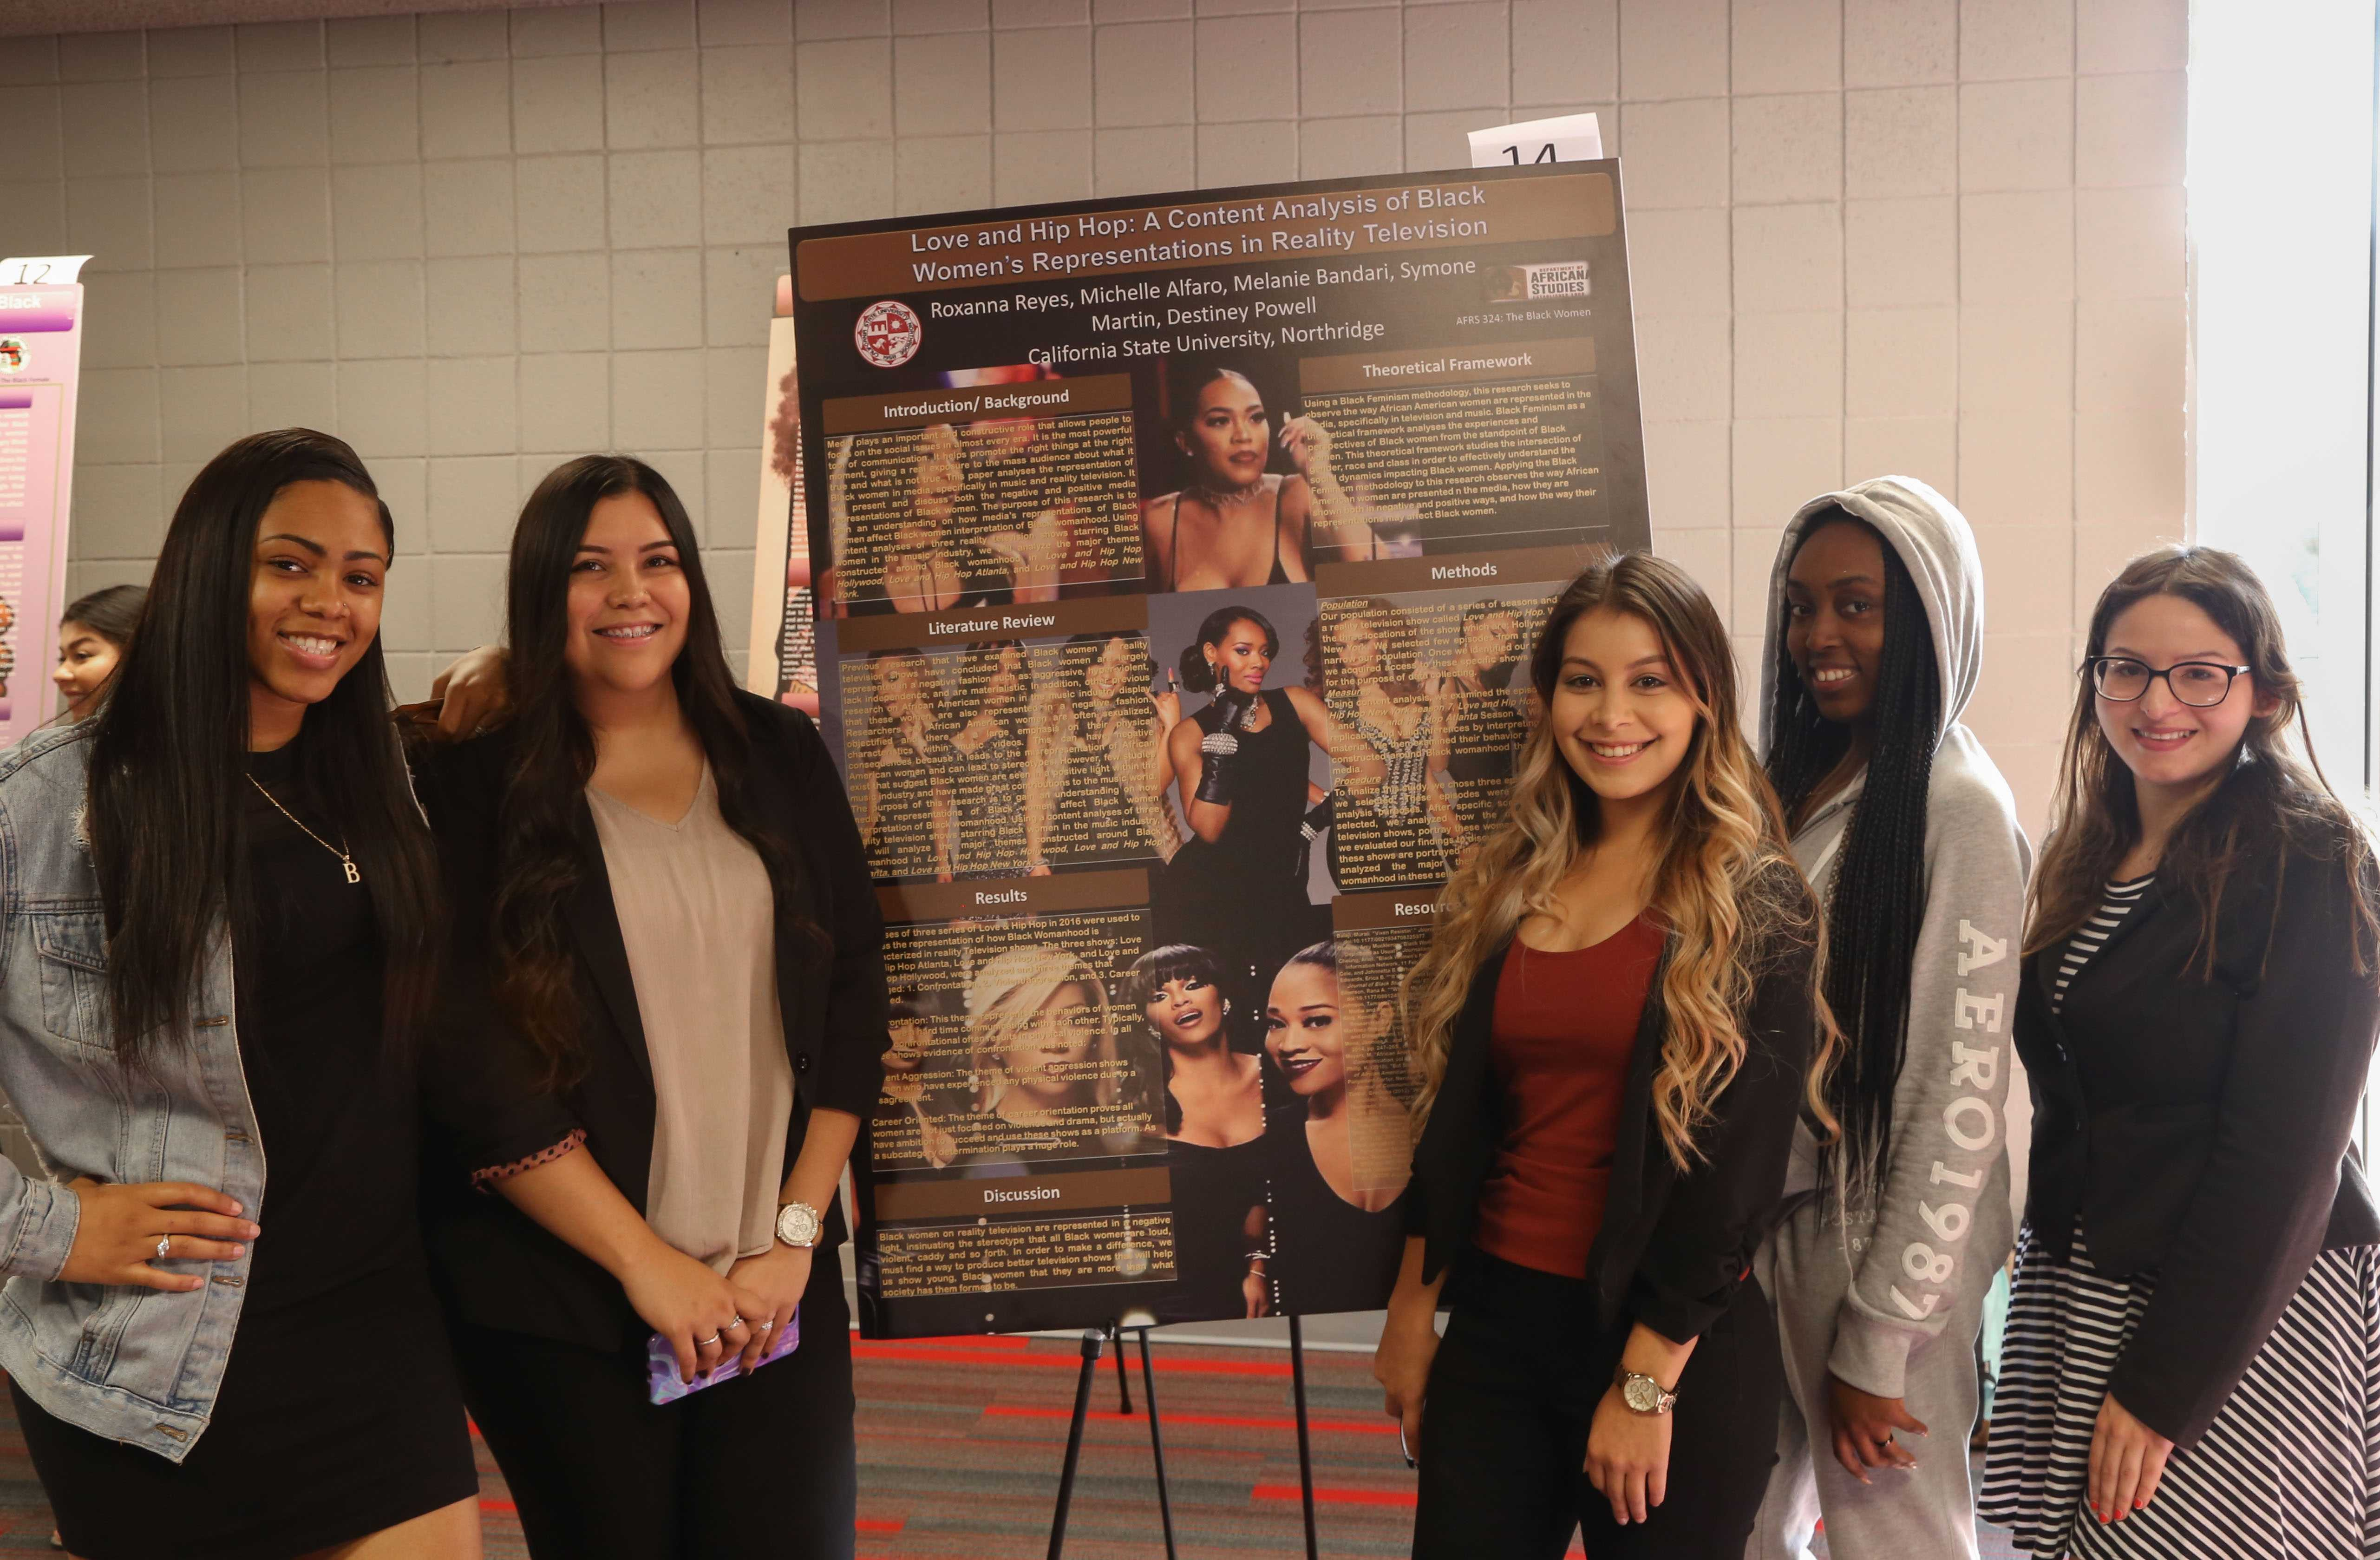 CSUN students (left to right) Destiney Powell, Michelle Alfaro, Roxanna Reyes, Simone Martin, and Melanie Bandari, share their poster, Love and Hip Hop: A Content Analysis of Black Women's Representation in Reality Television, for the Bi-annual Men/Women of Color Enquiry in Northridge, California, Friday, November 17, 2017. Photo credit: John Hernandez